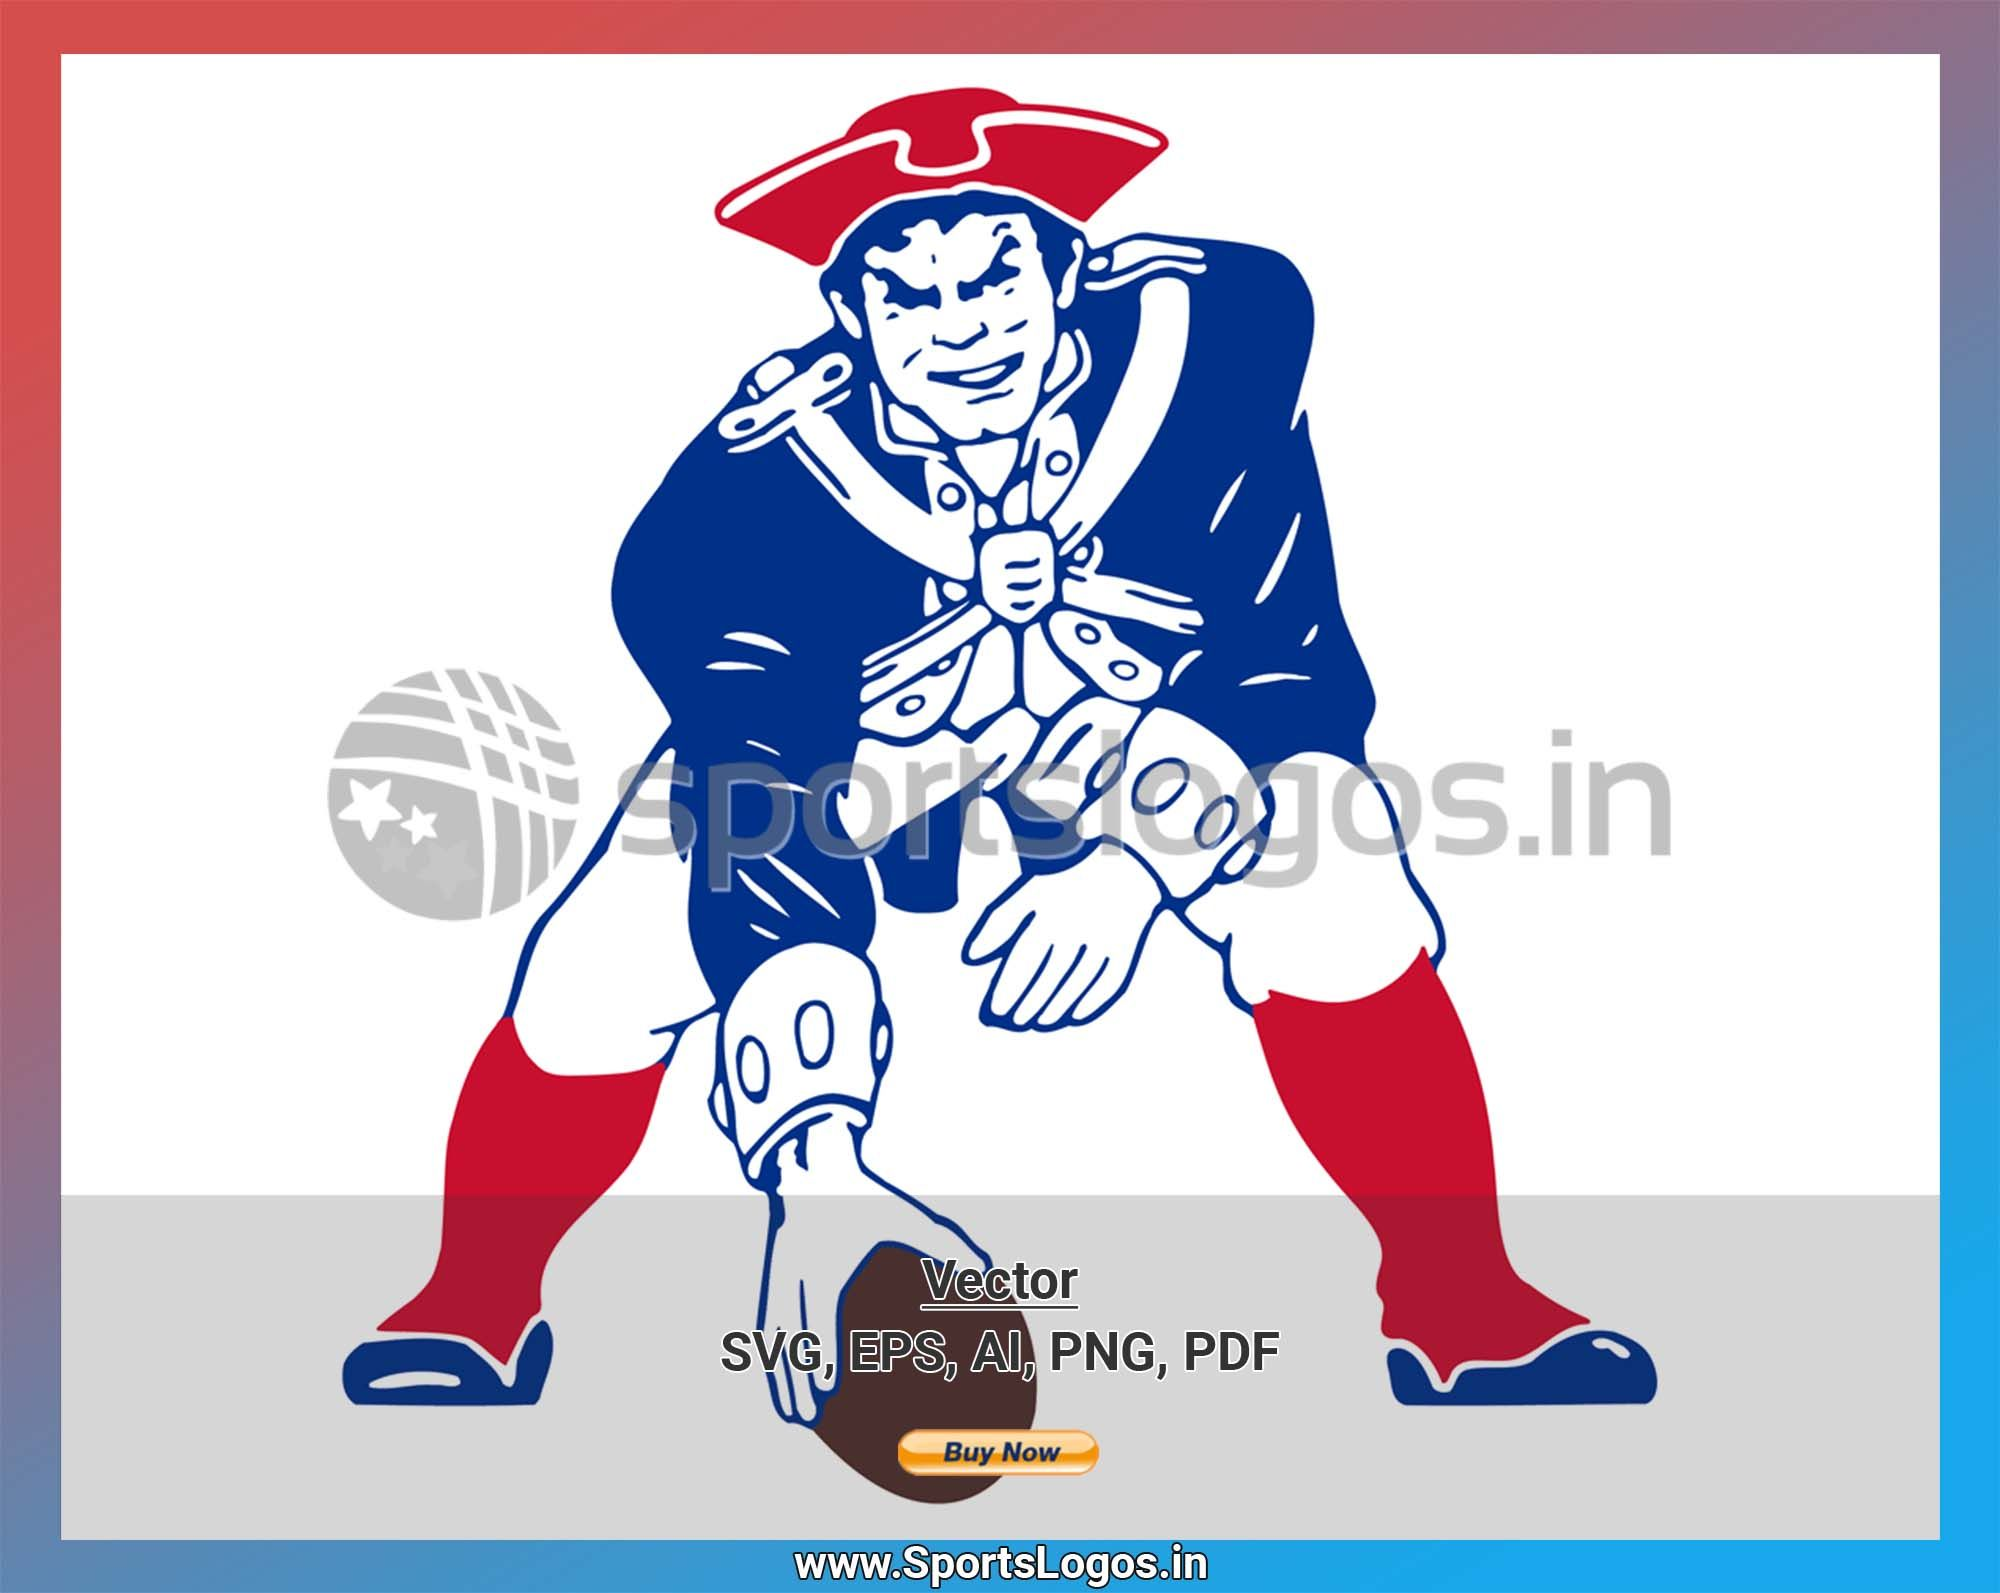 Boston Patriots 19891992, American Football League